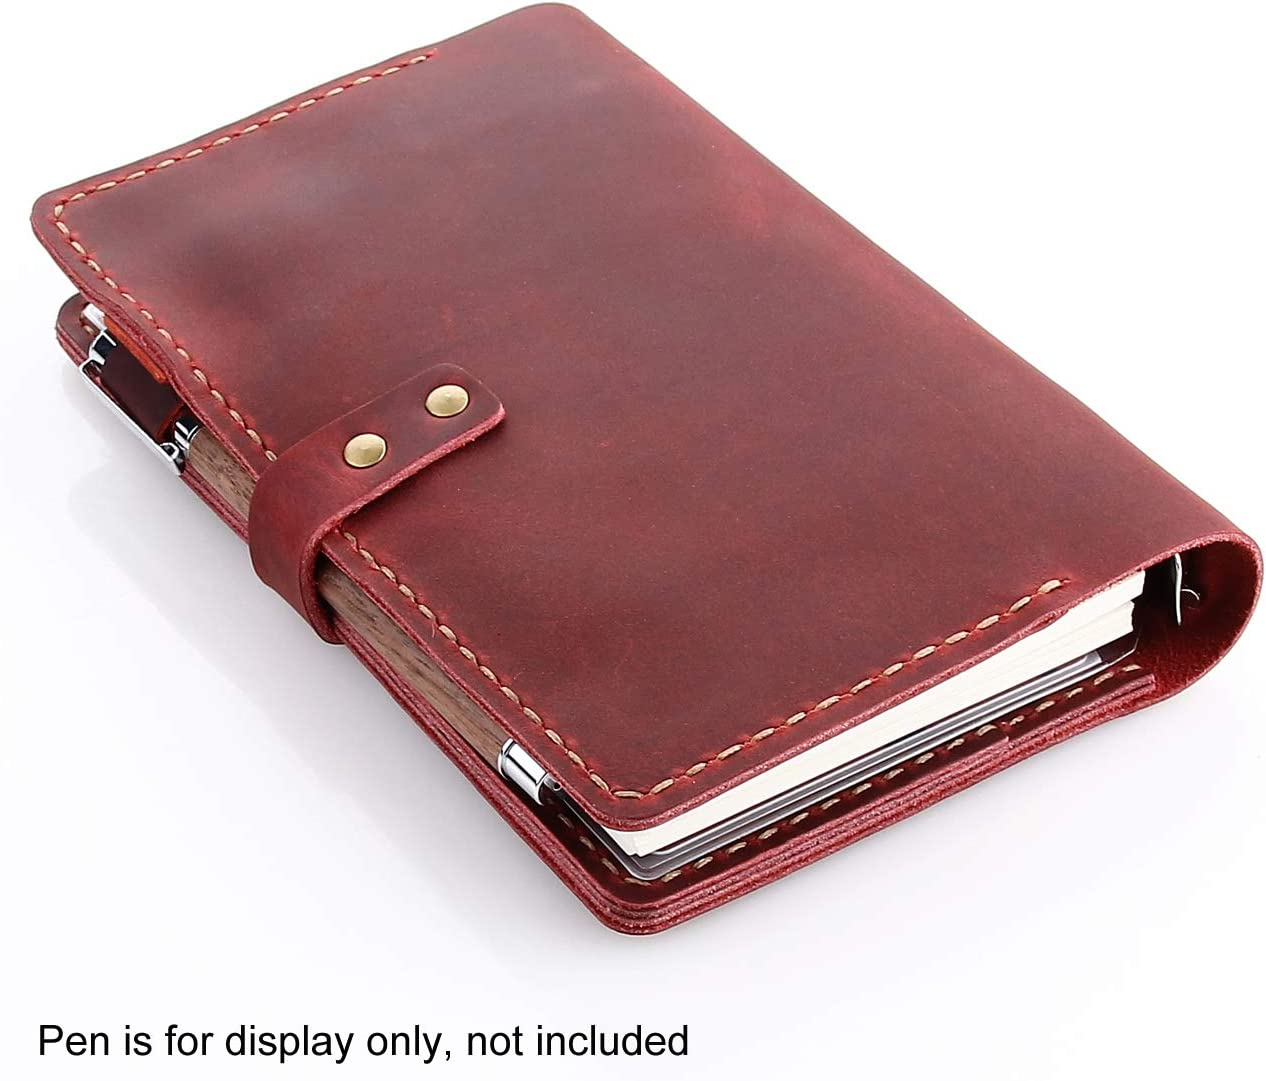 A6 Ring Binder Refillable Diary Notepads Vintage Handmade Travel Organizer Agenda for Men Women Genuine Leather Journal Writing Notebook Coffee